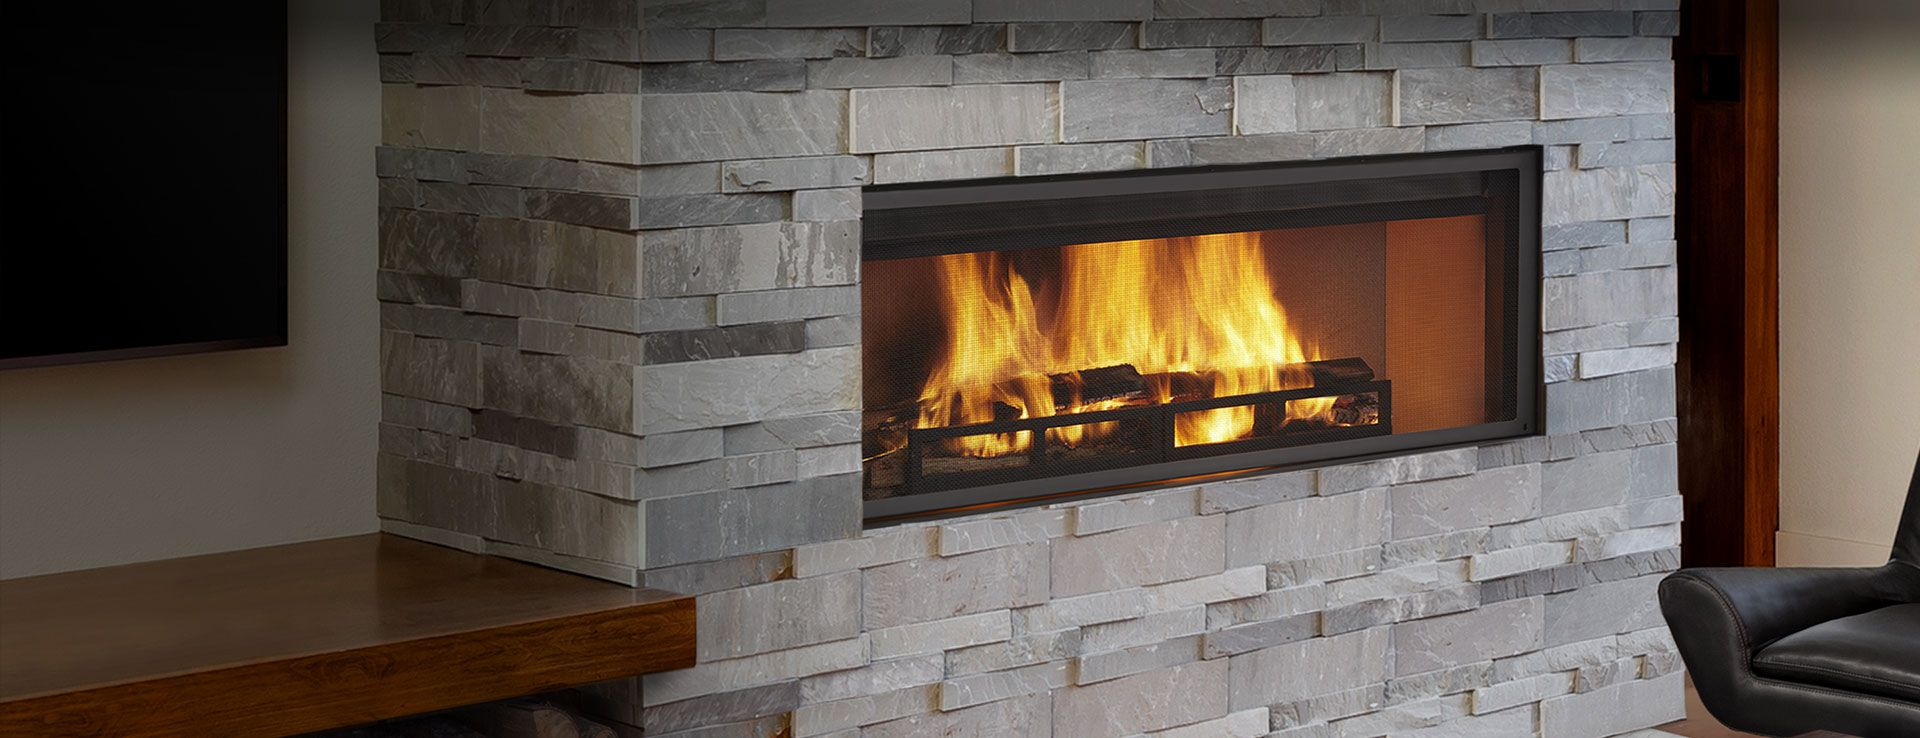 Can I Mount A Tv Over My Fireplace Tv Above Fireplace Fireplace